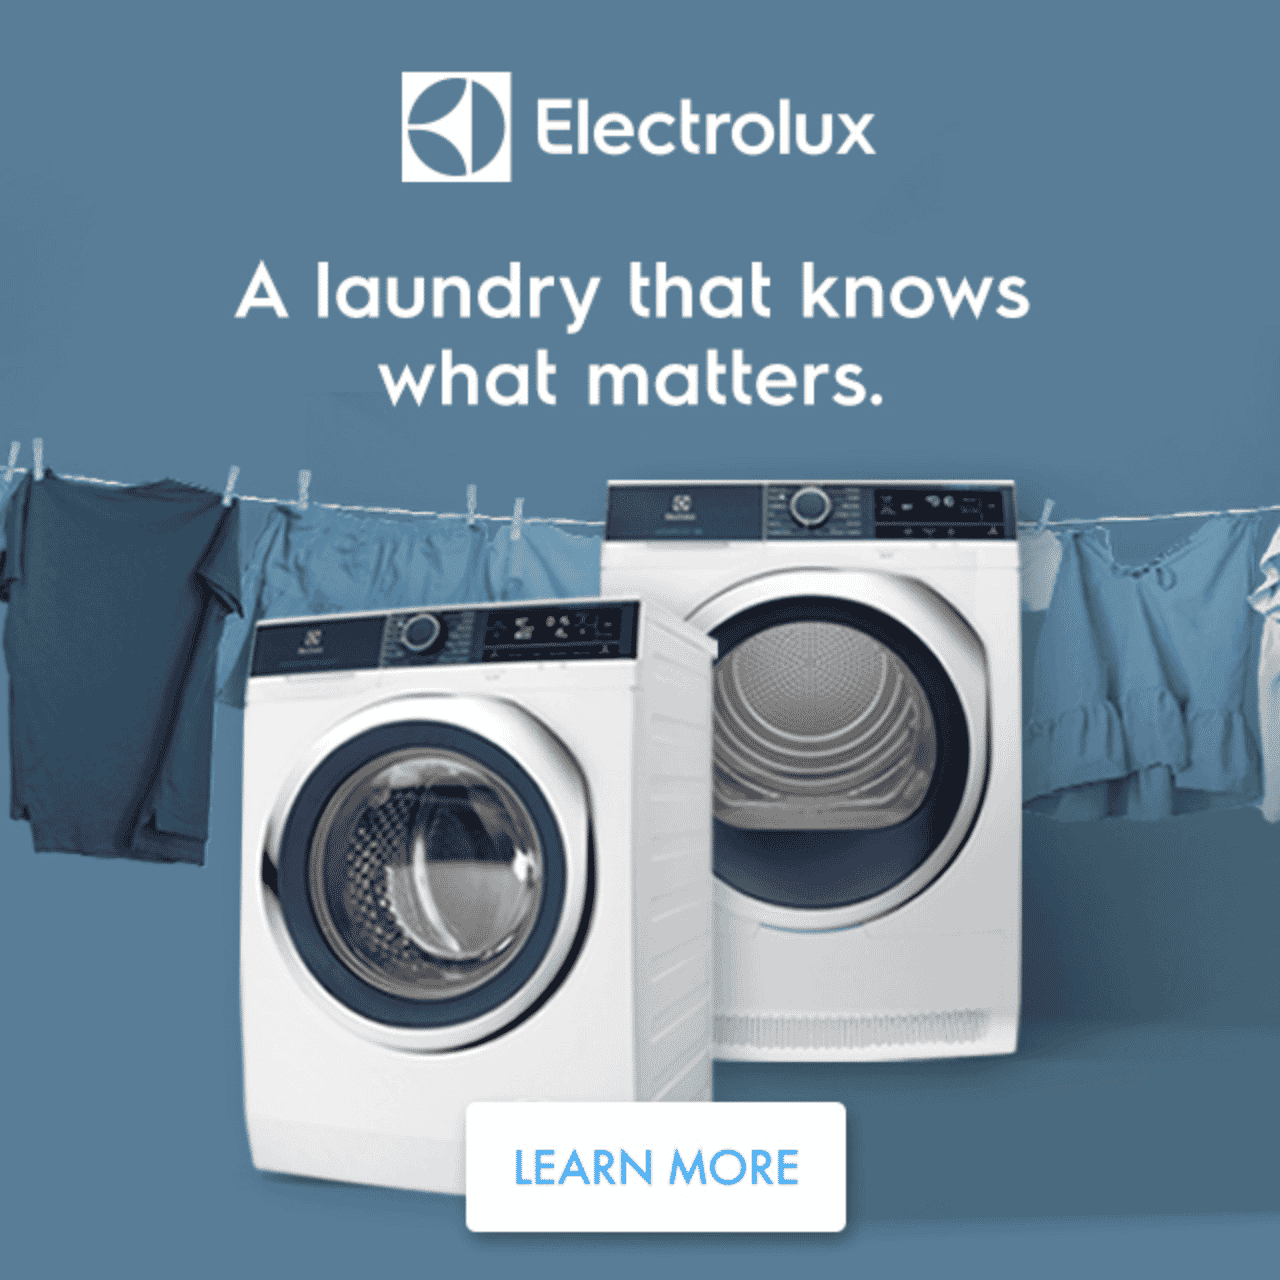 Electrolux | The Good Guys